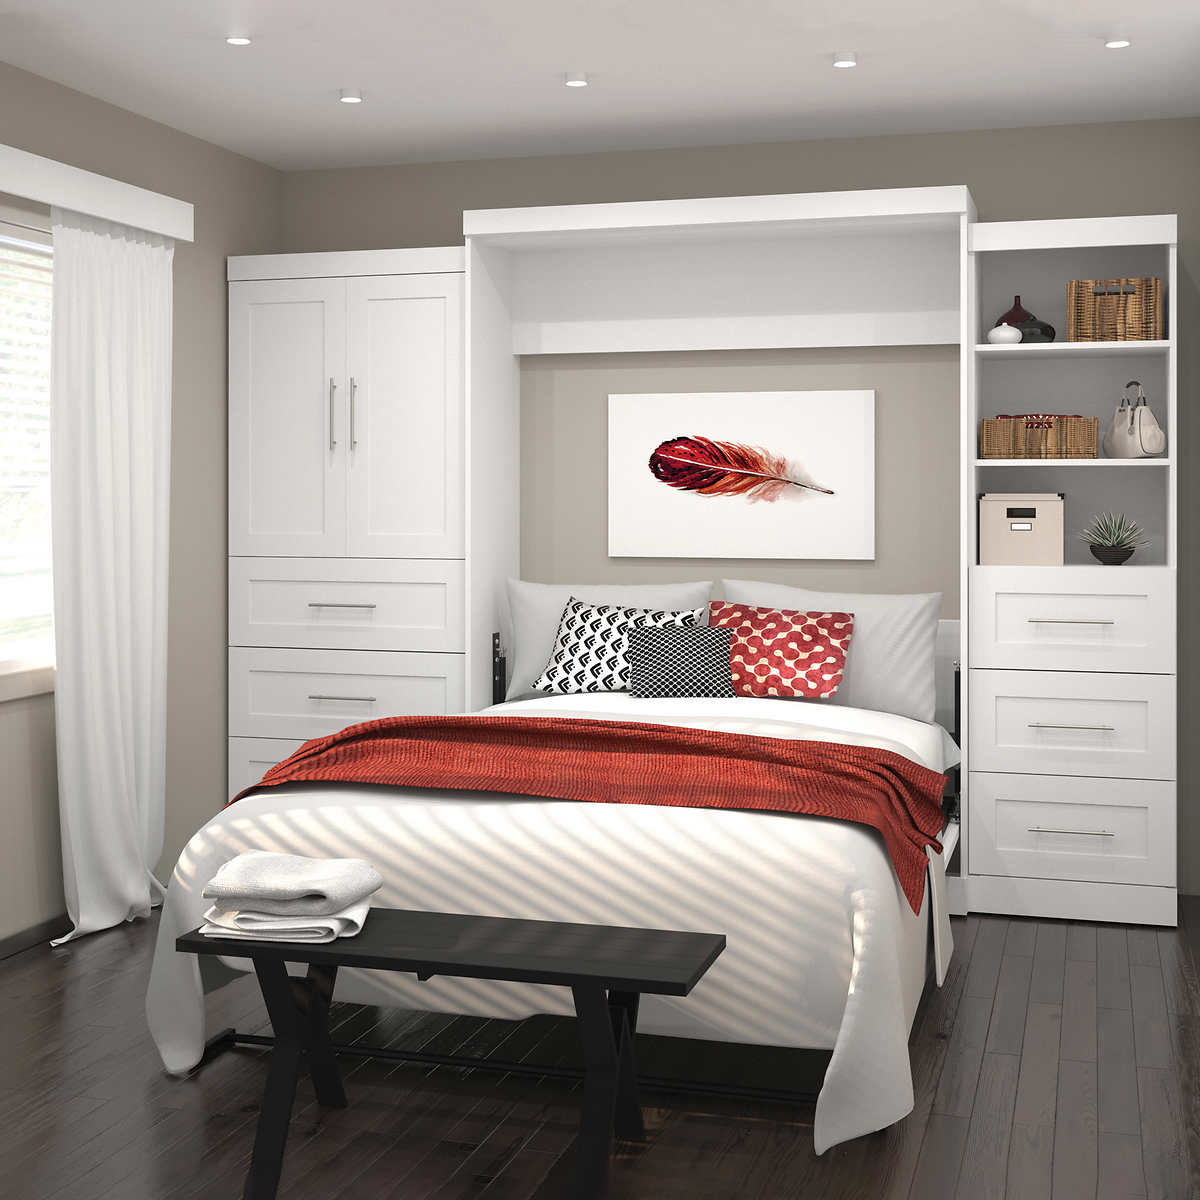 Boutique Queen Wall Bed With One 36 Storage Unit Drawers And Door 25 In White